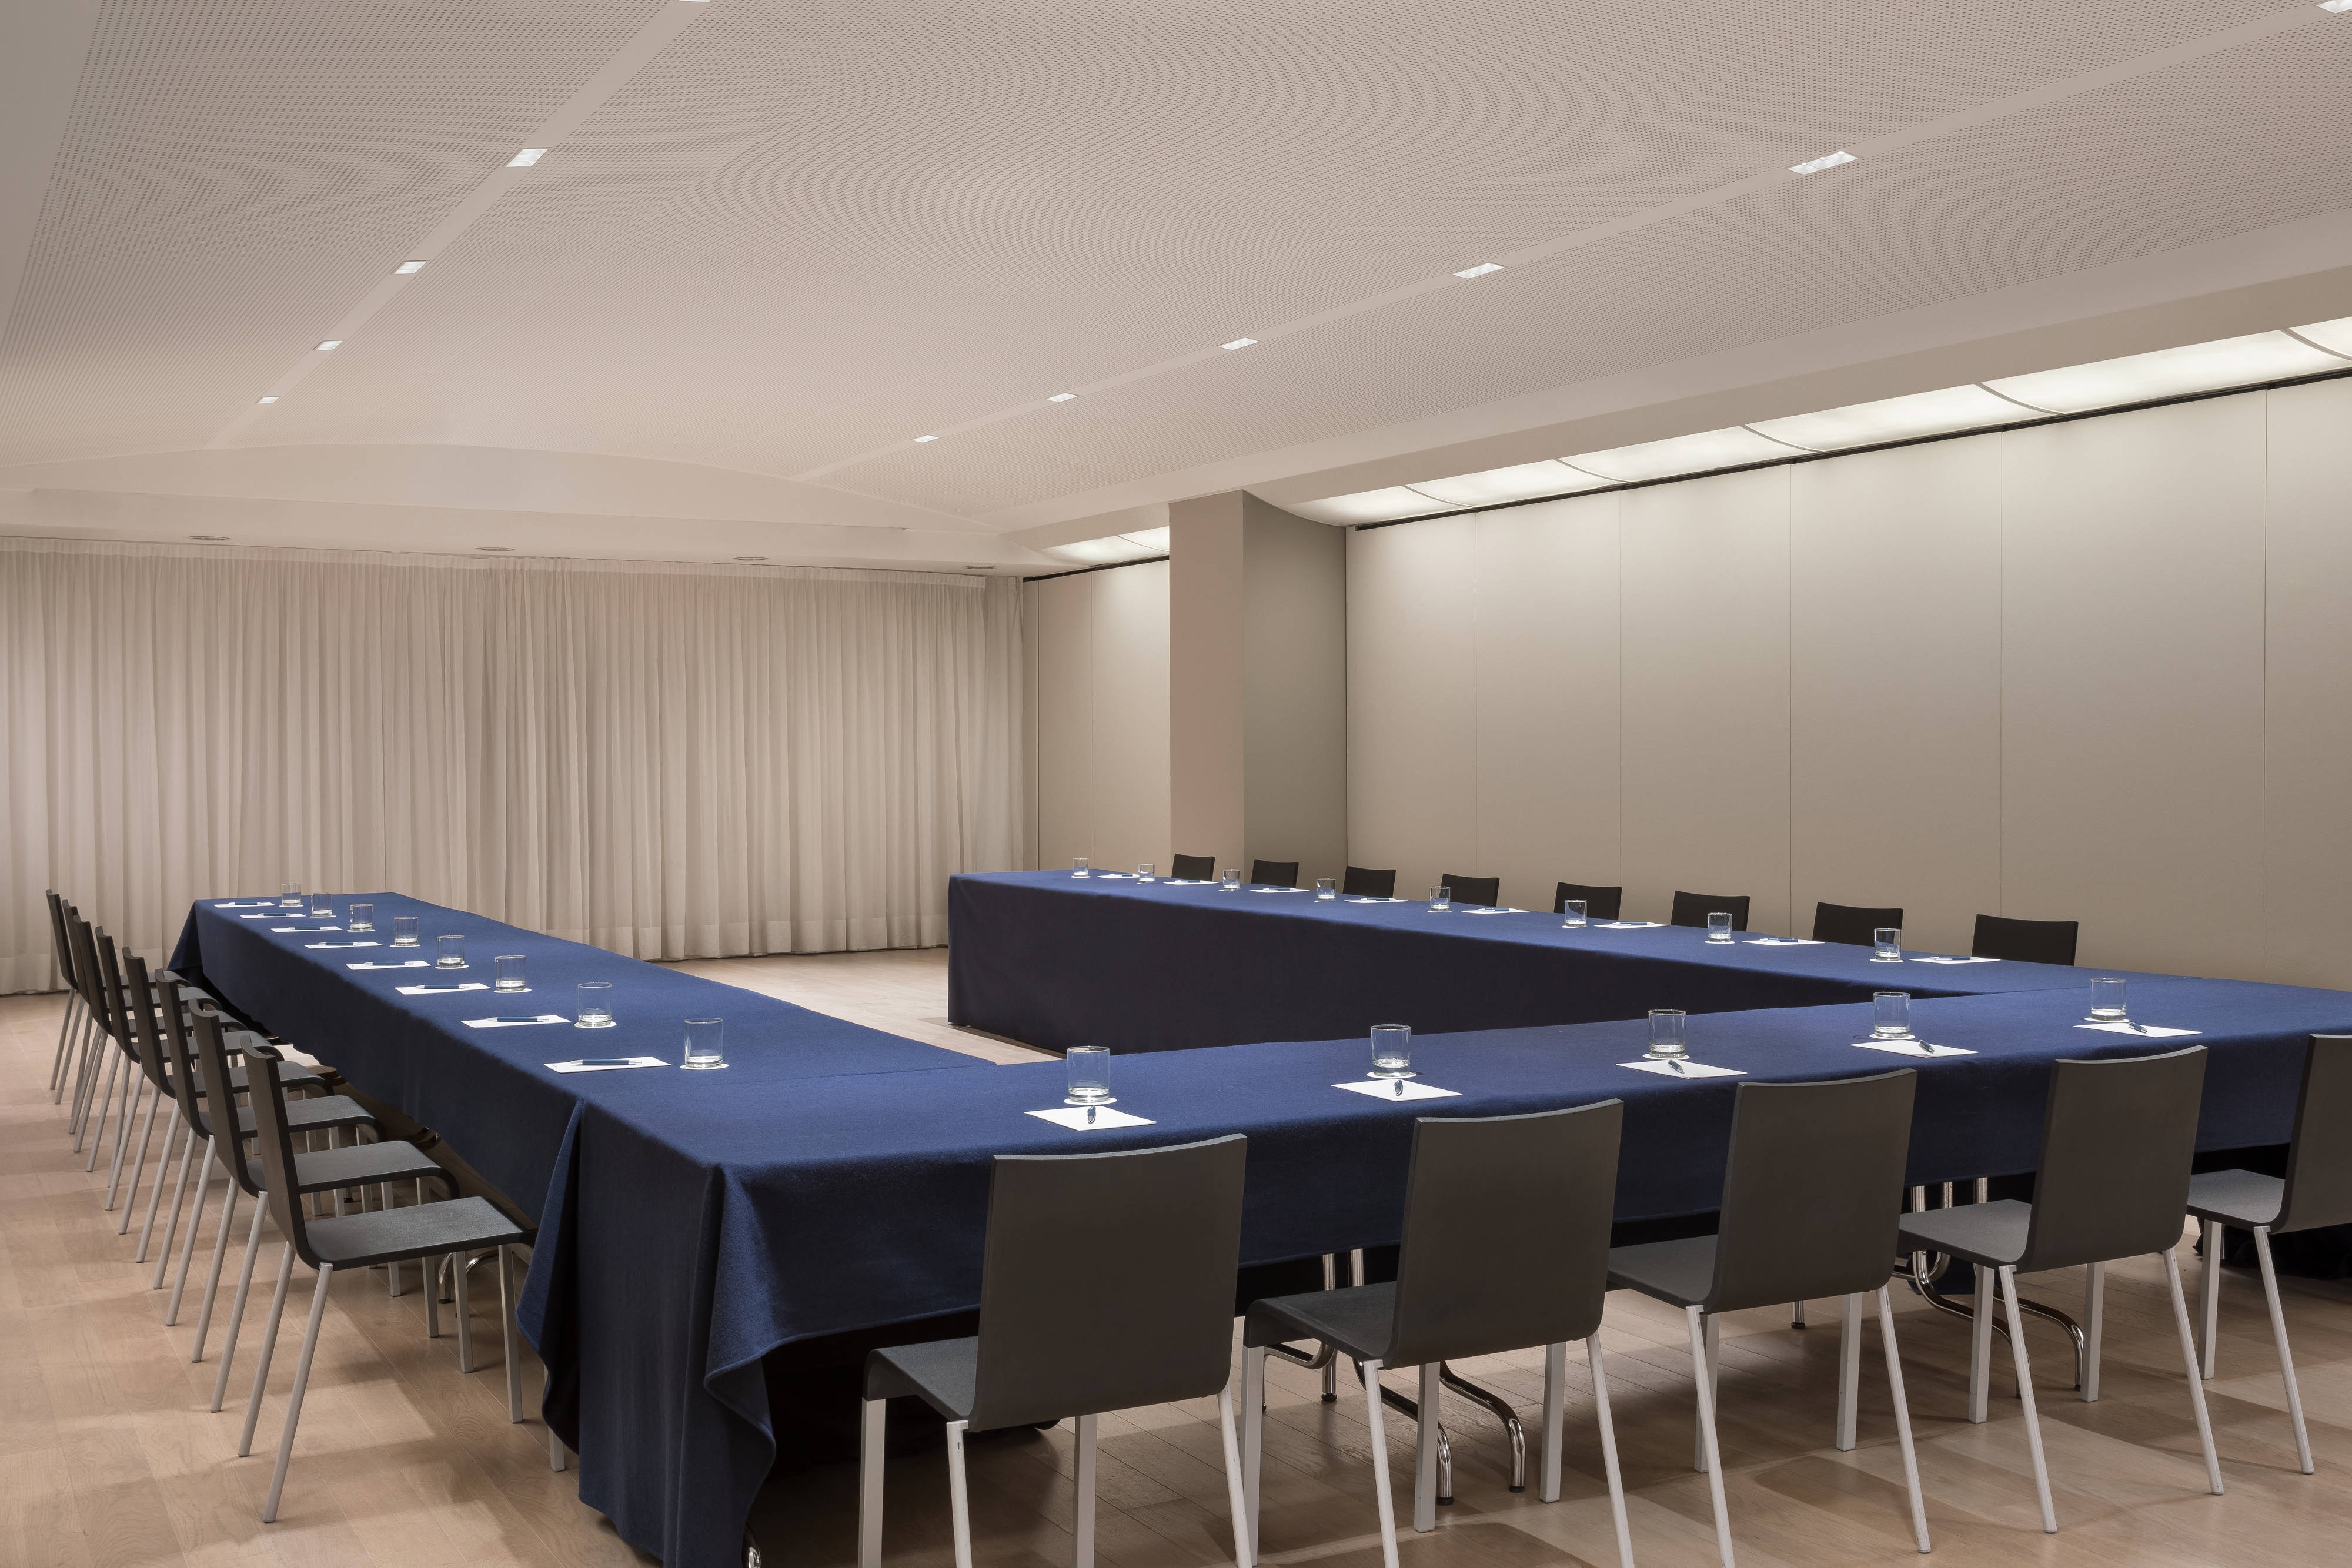 Monastero Meeting Room U-Shape Setup